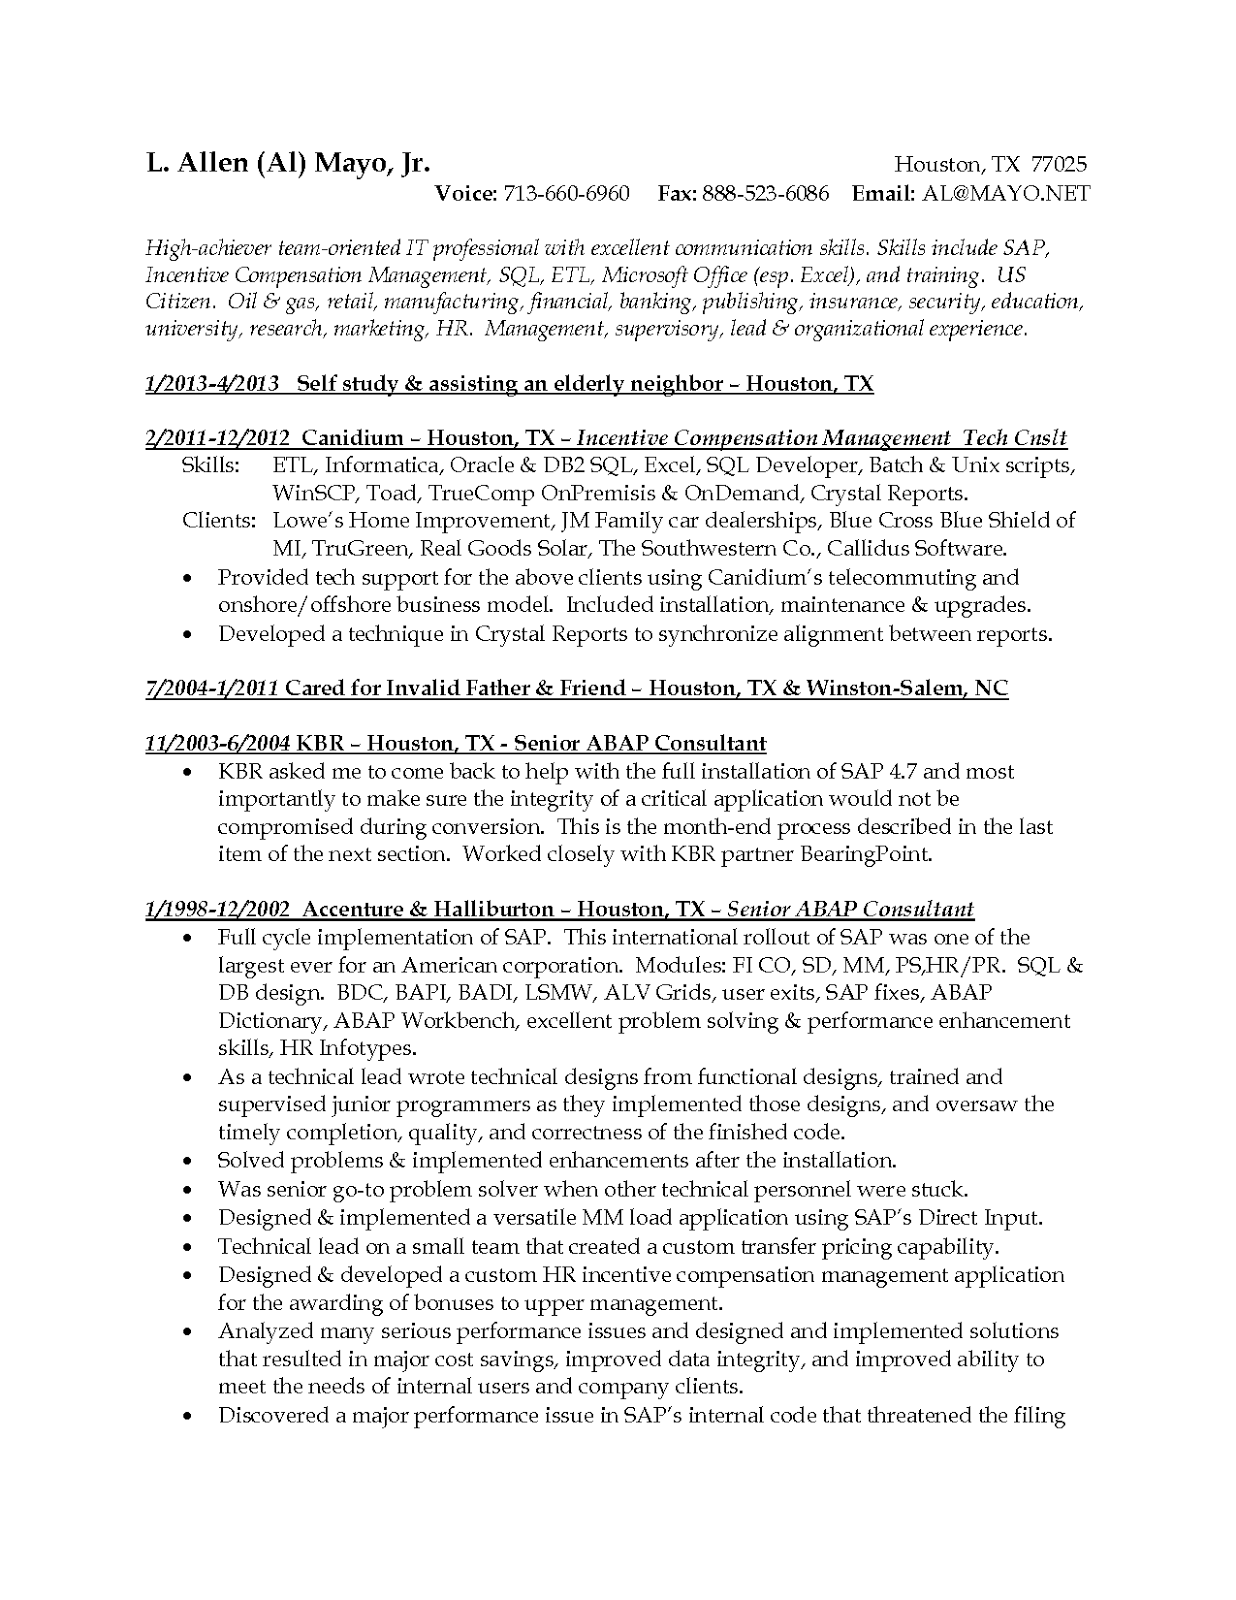 Resume categories examples